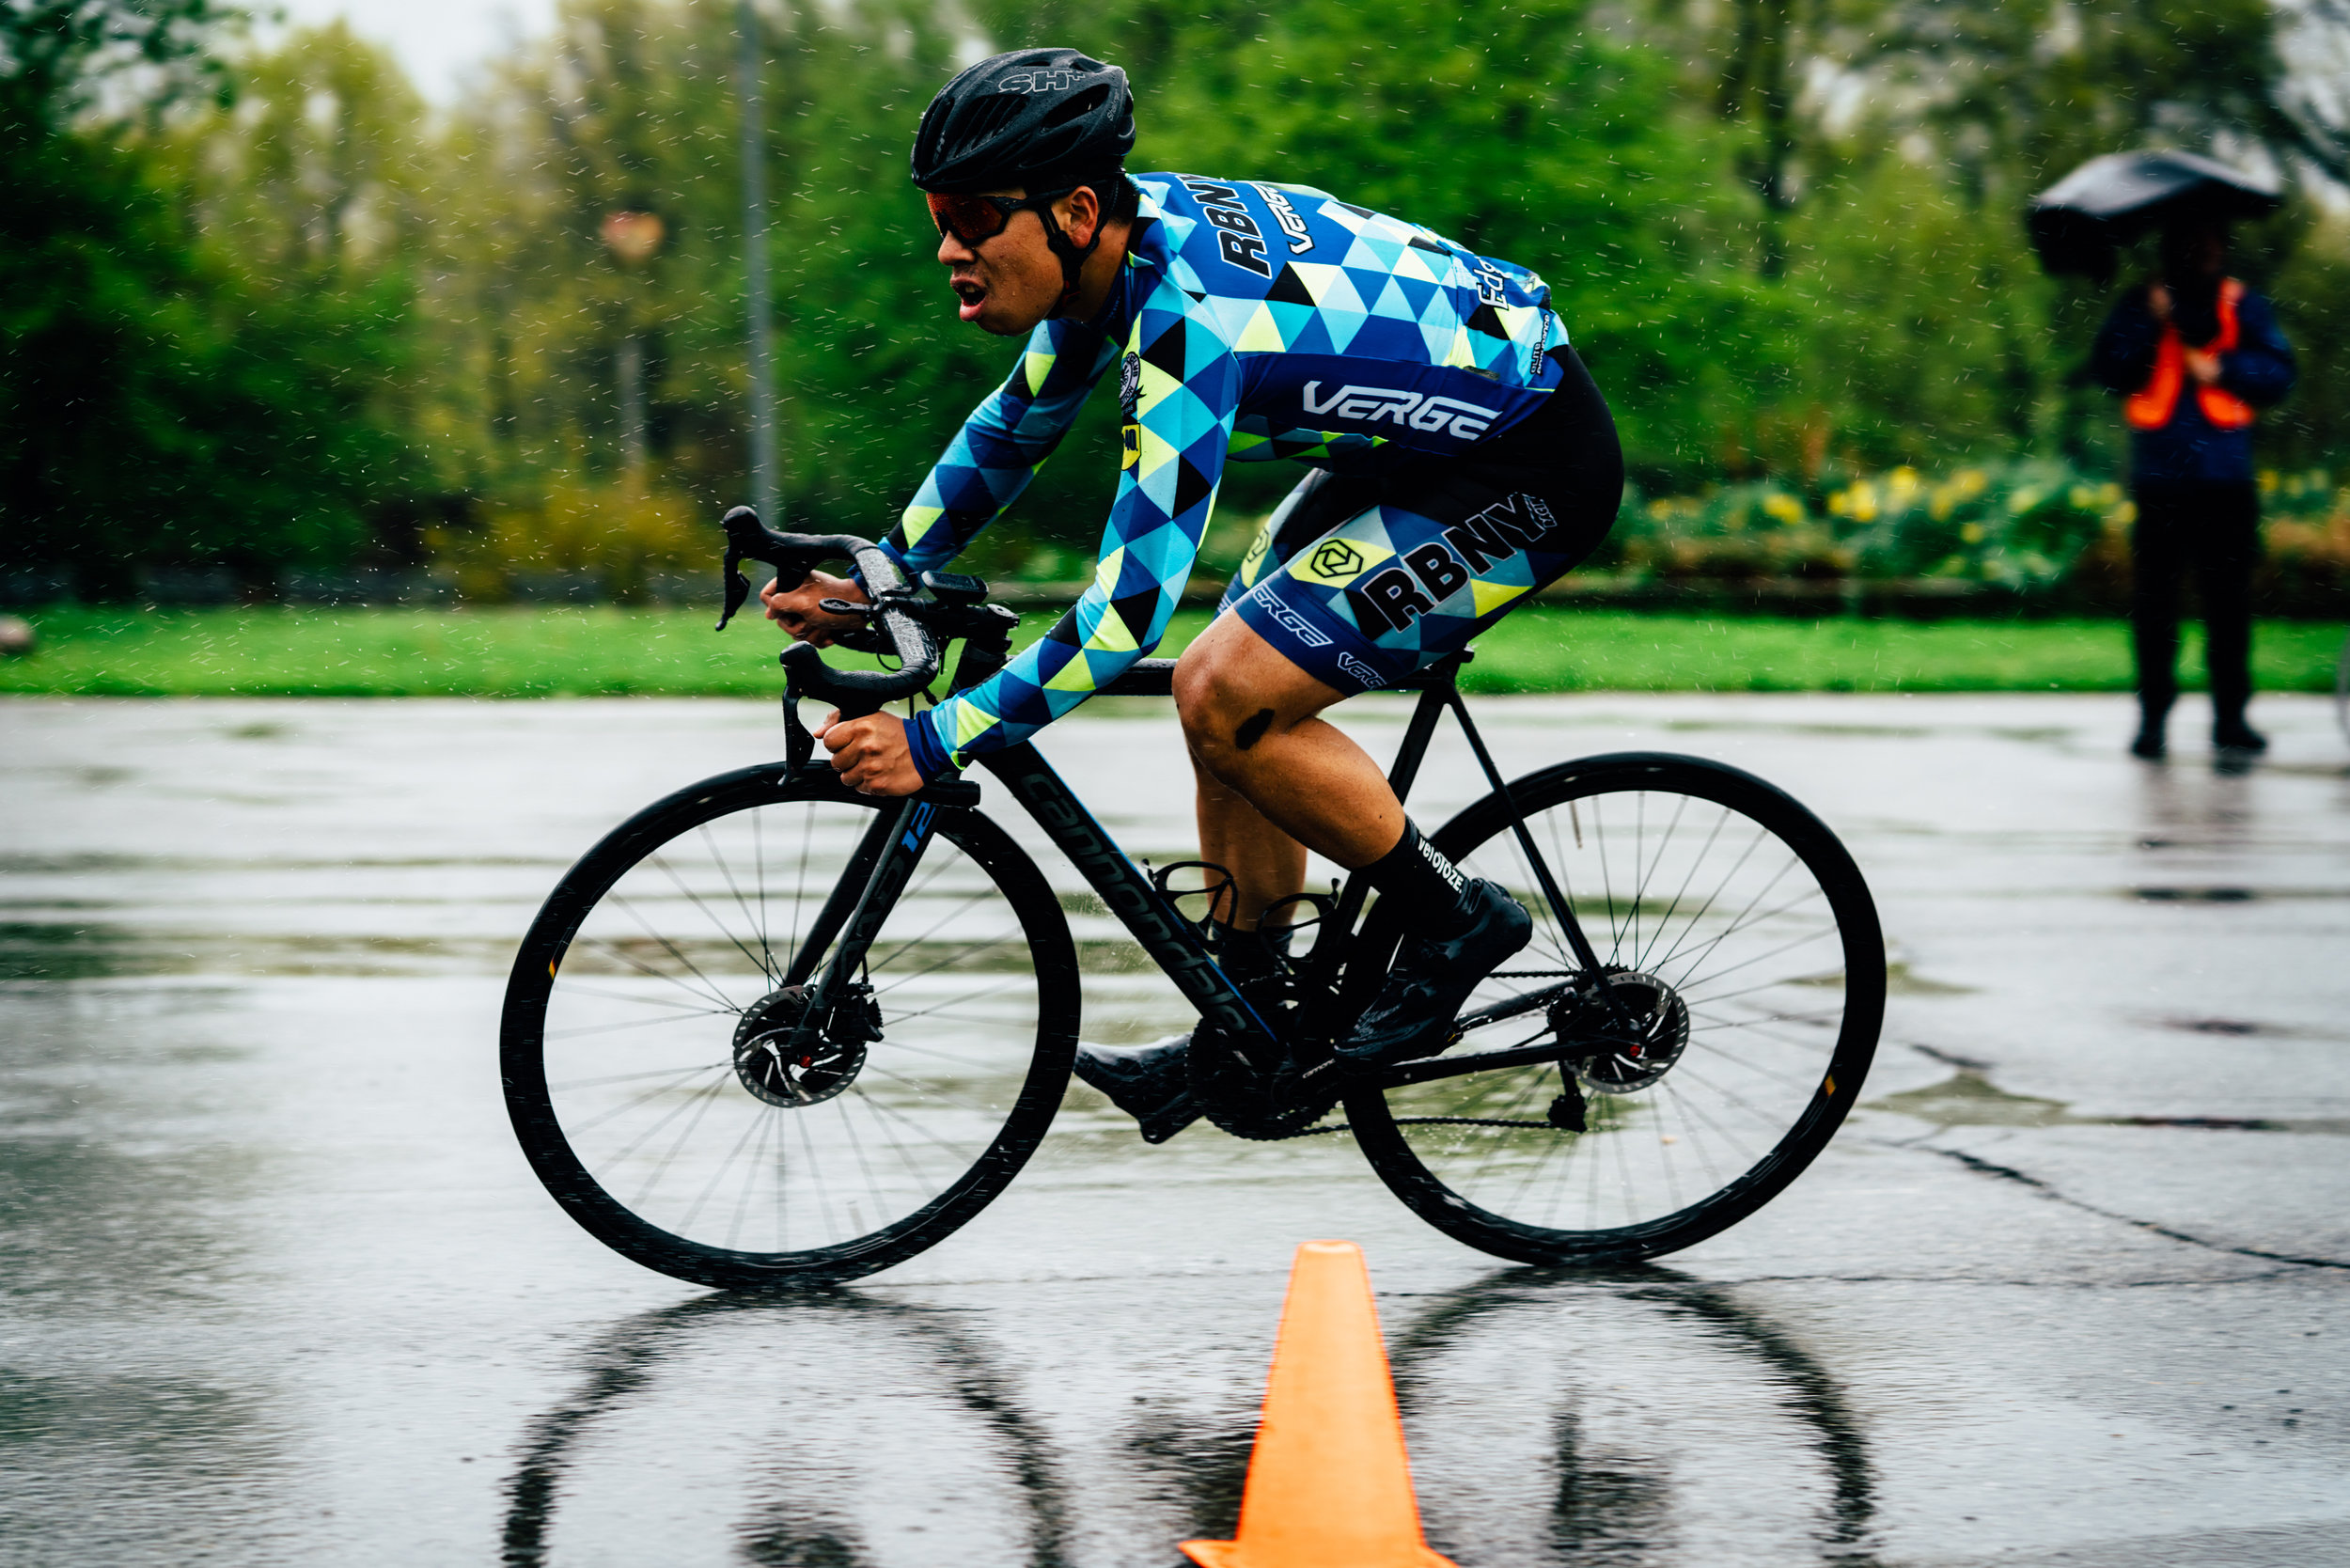 Photo Rhetoric - To Be Determined - Zach Koop Memorial Crit at Orchard Bearch-3005.jpg